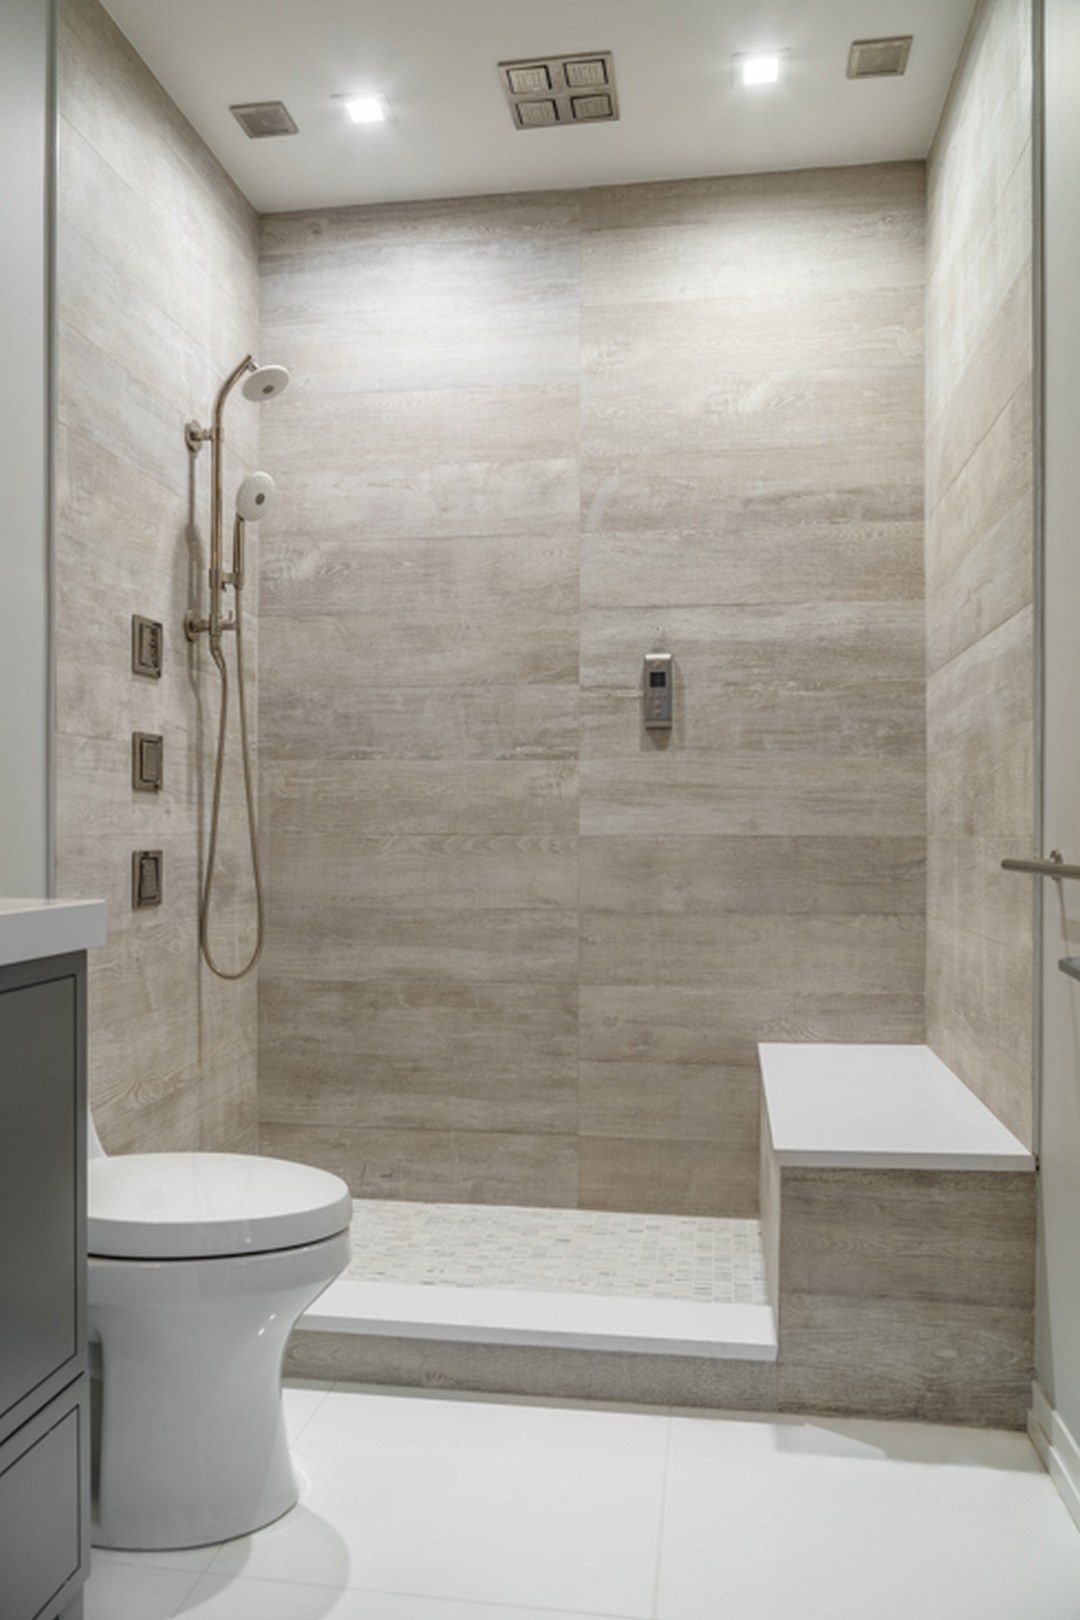 Bathroom Tiles Design >> Why You Should Remodel Your Bathroom Best Bathroom Tiles